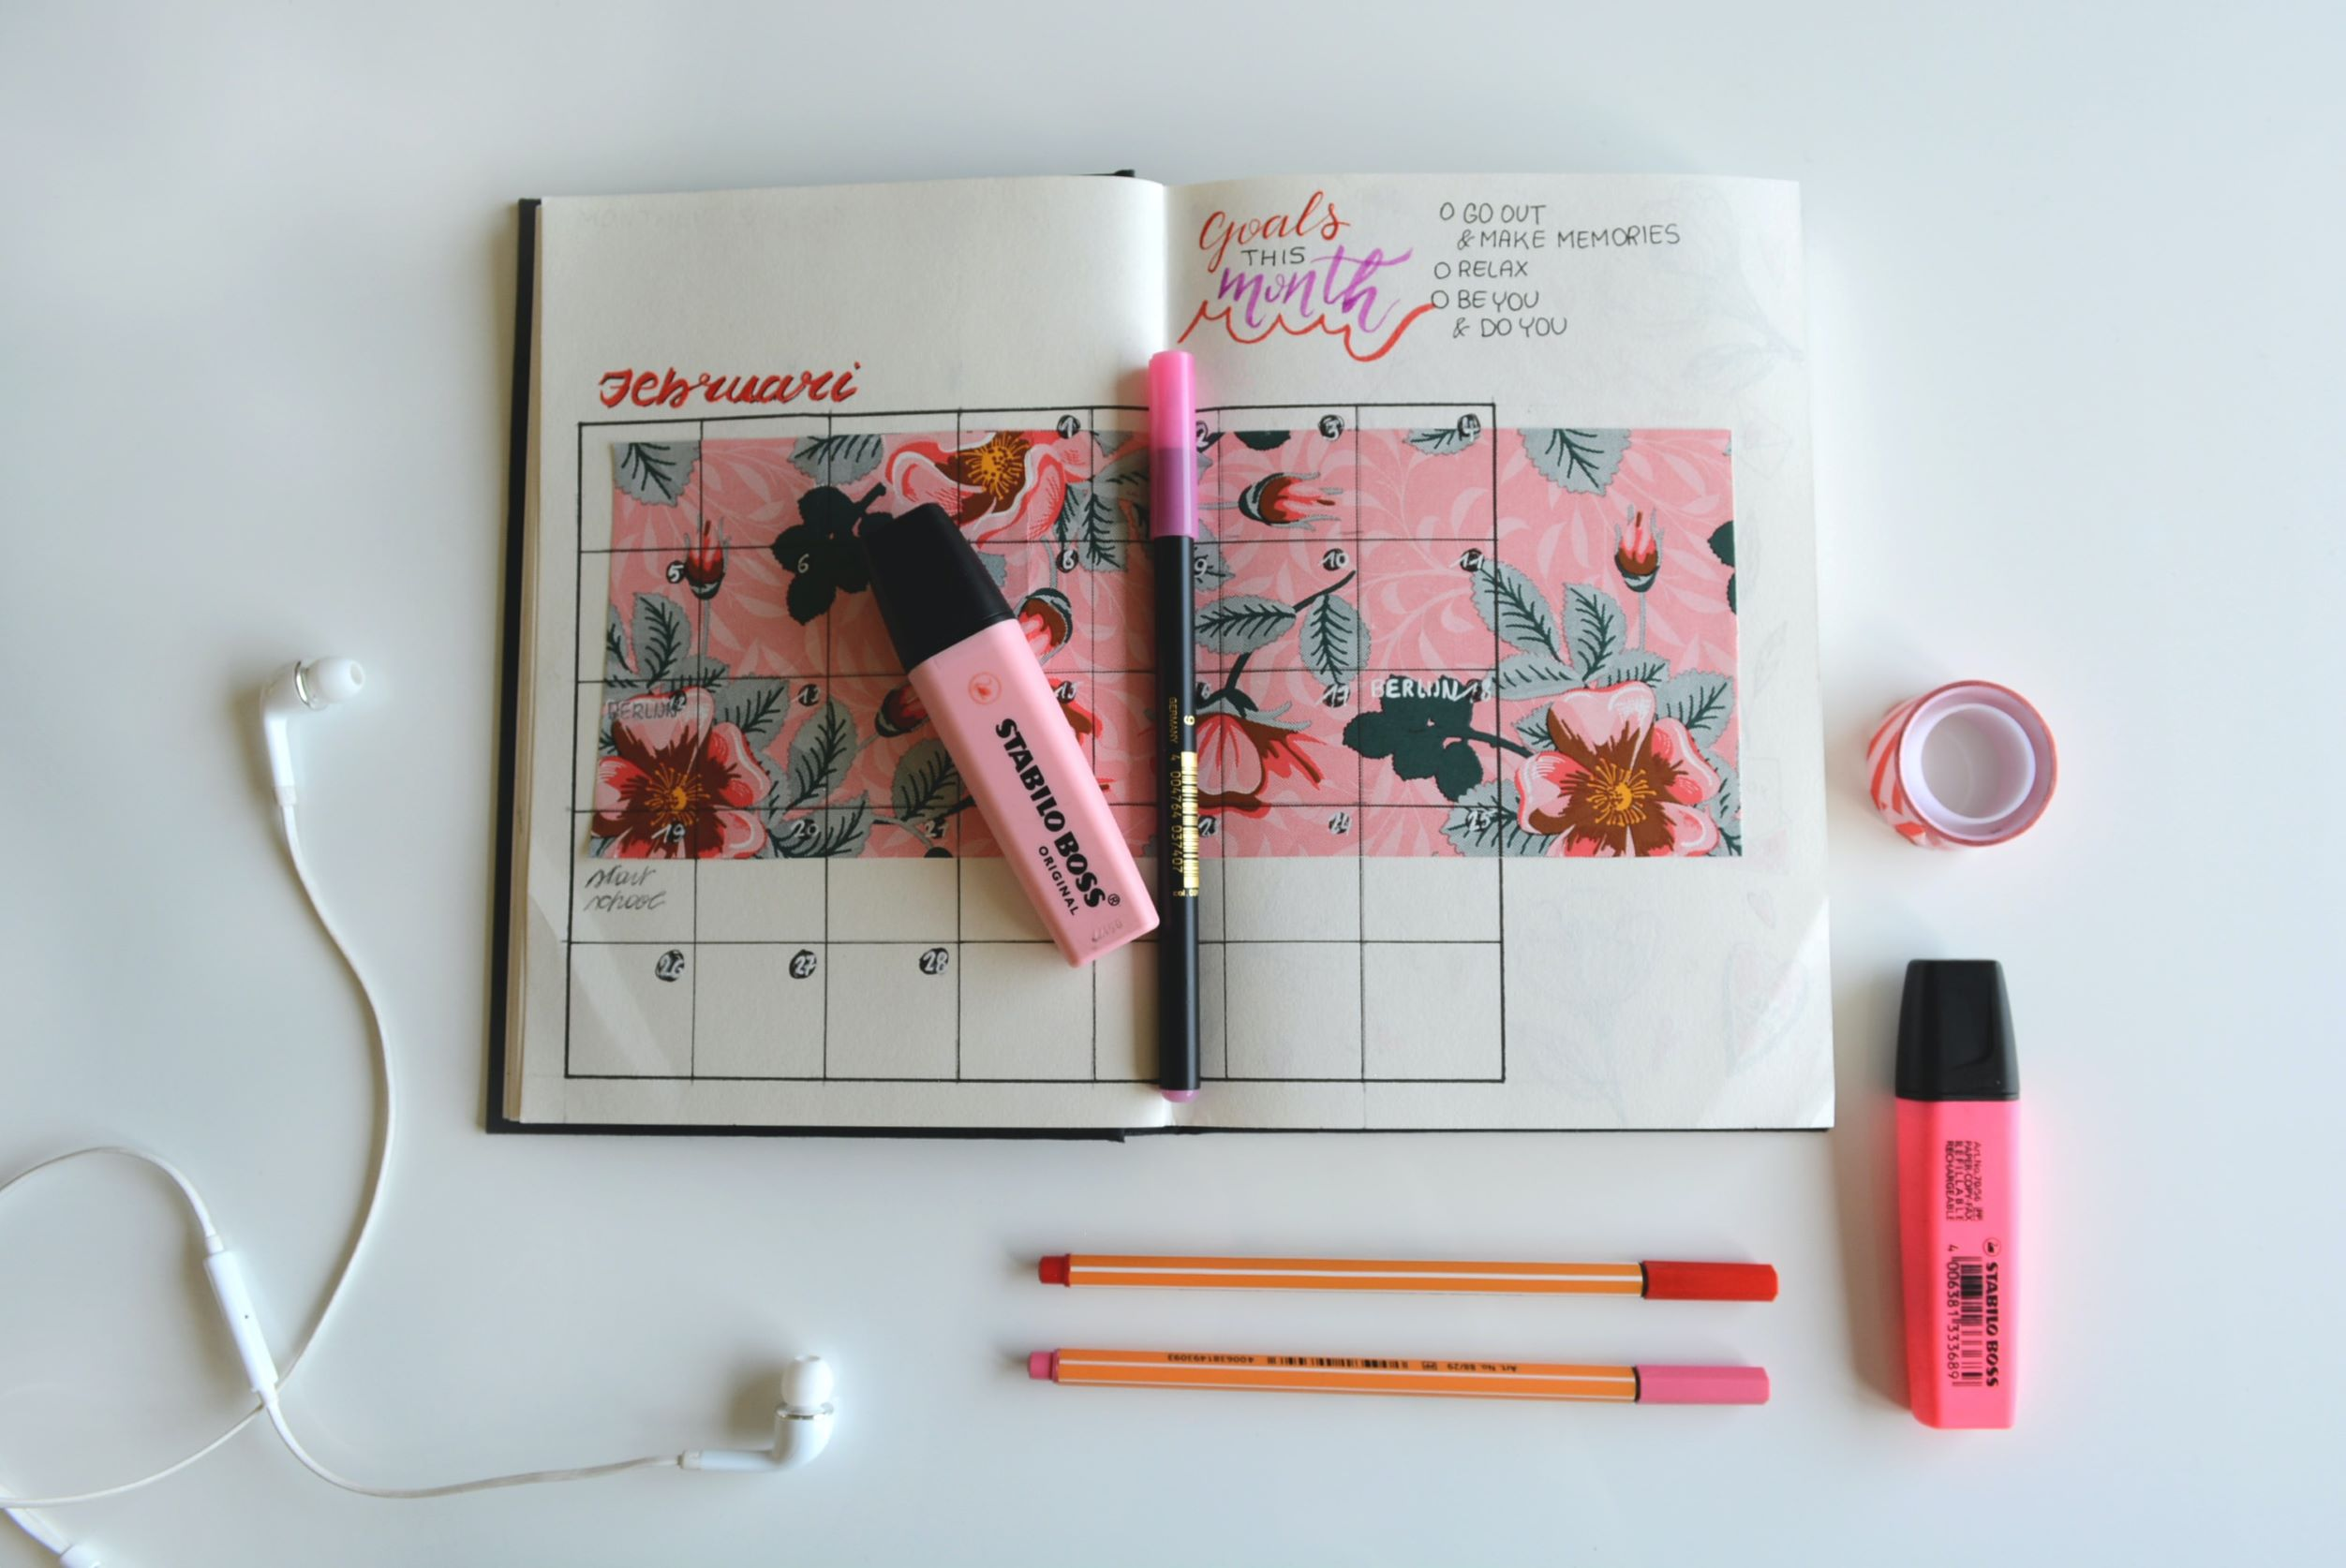 Pink planner, pens, highlighters and washi tape